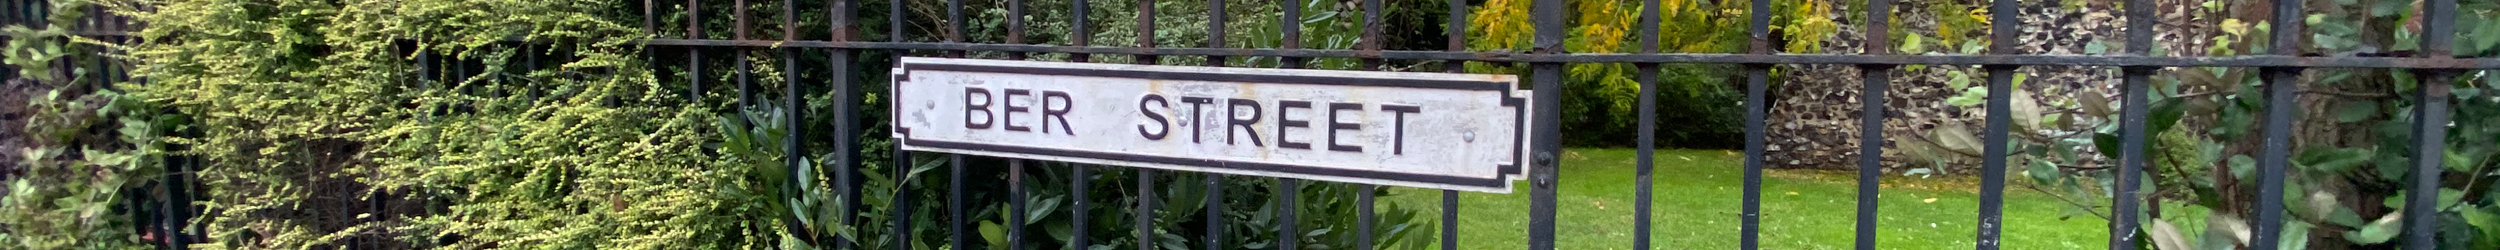 The Ber Street sign for the Ber Street Hub contact page